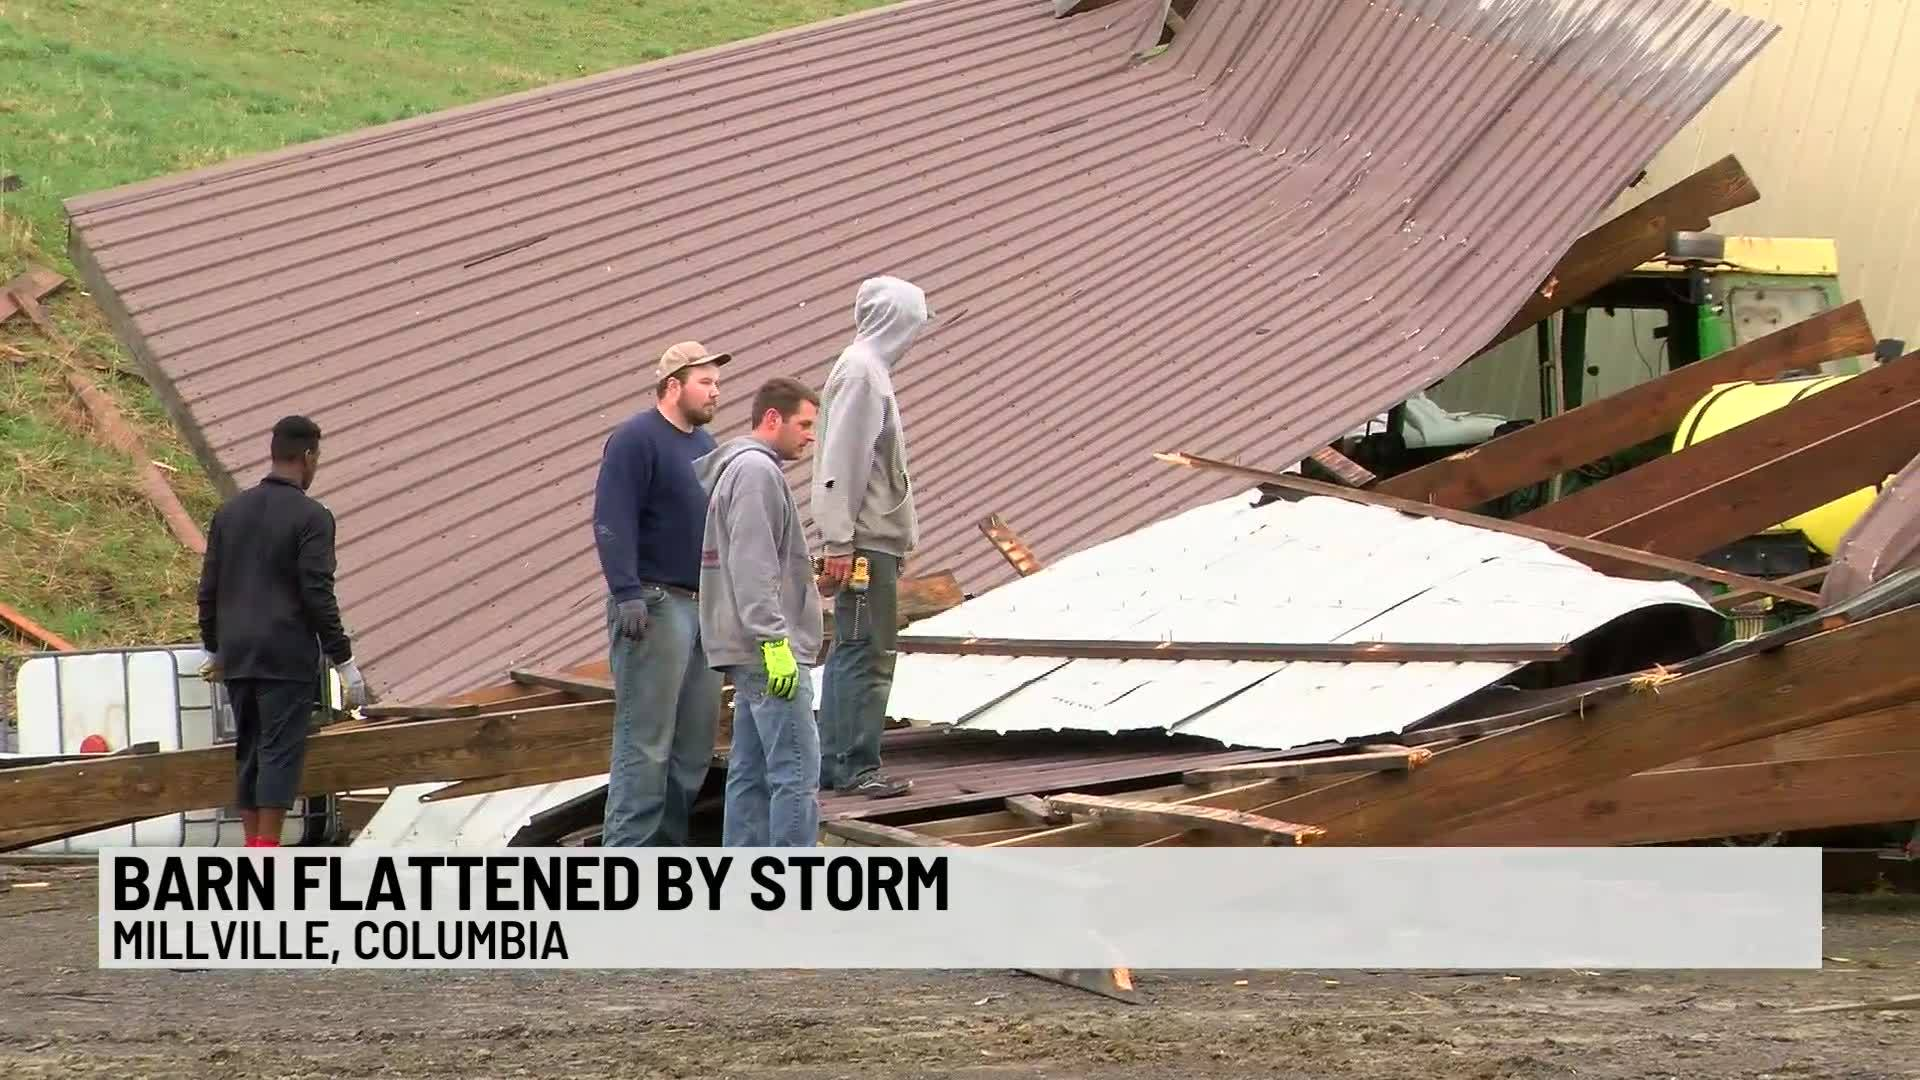 Barn_Flattened_by_Storm_4_20190415151353